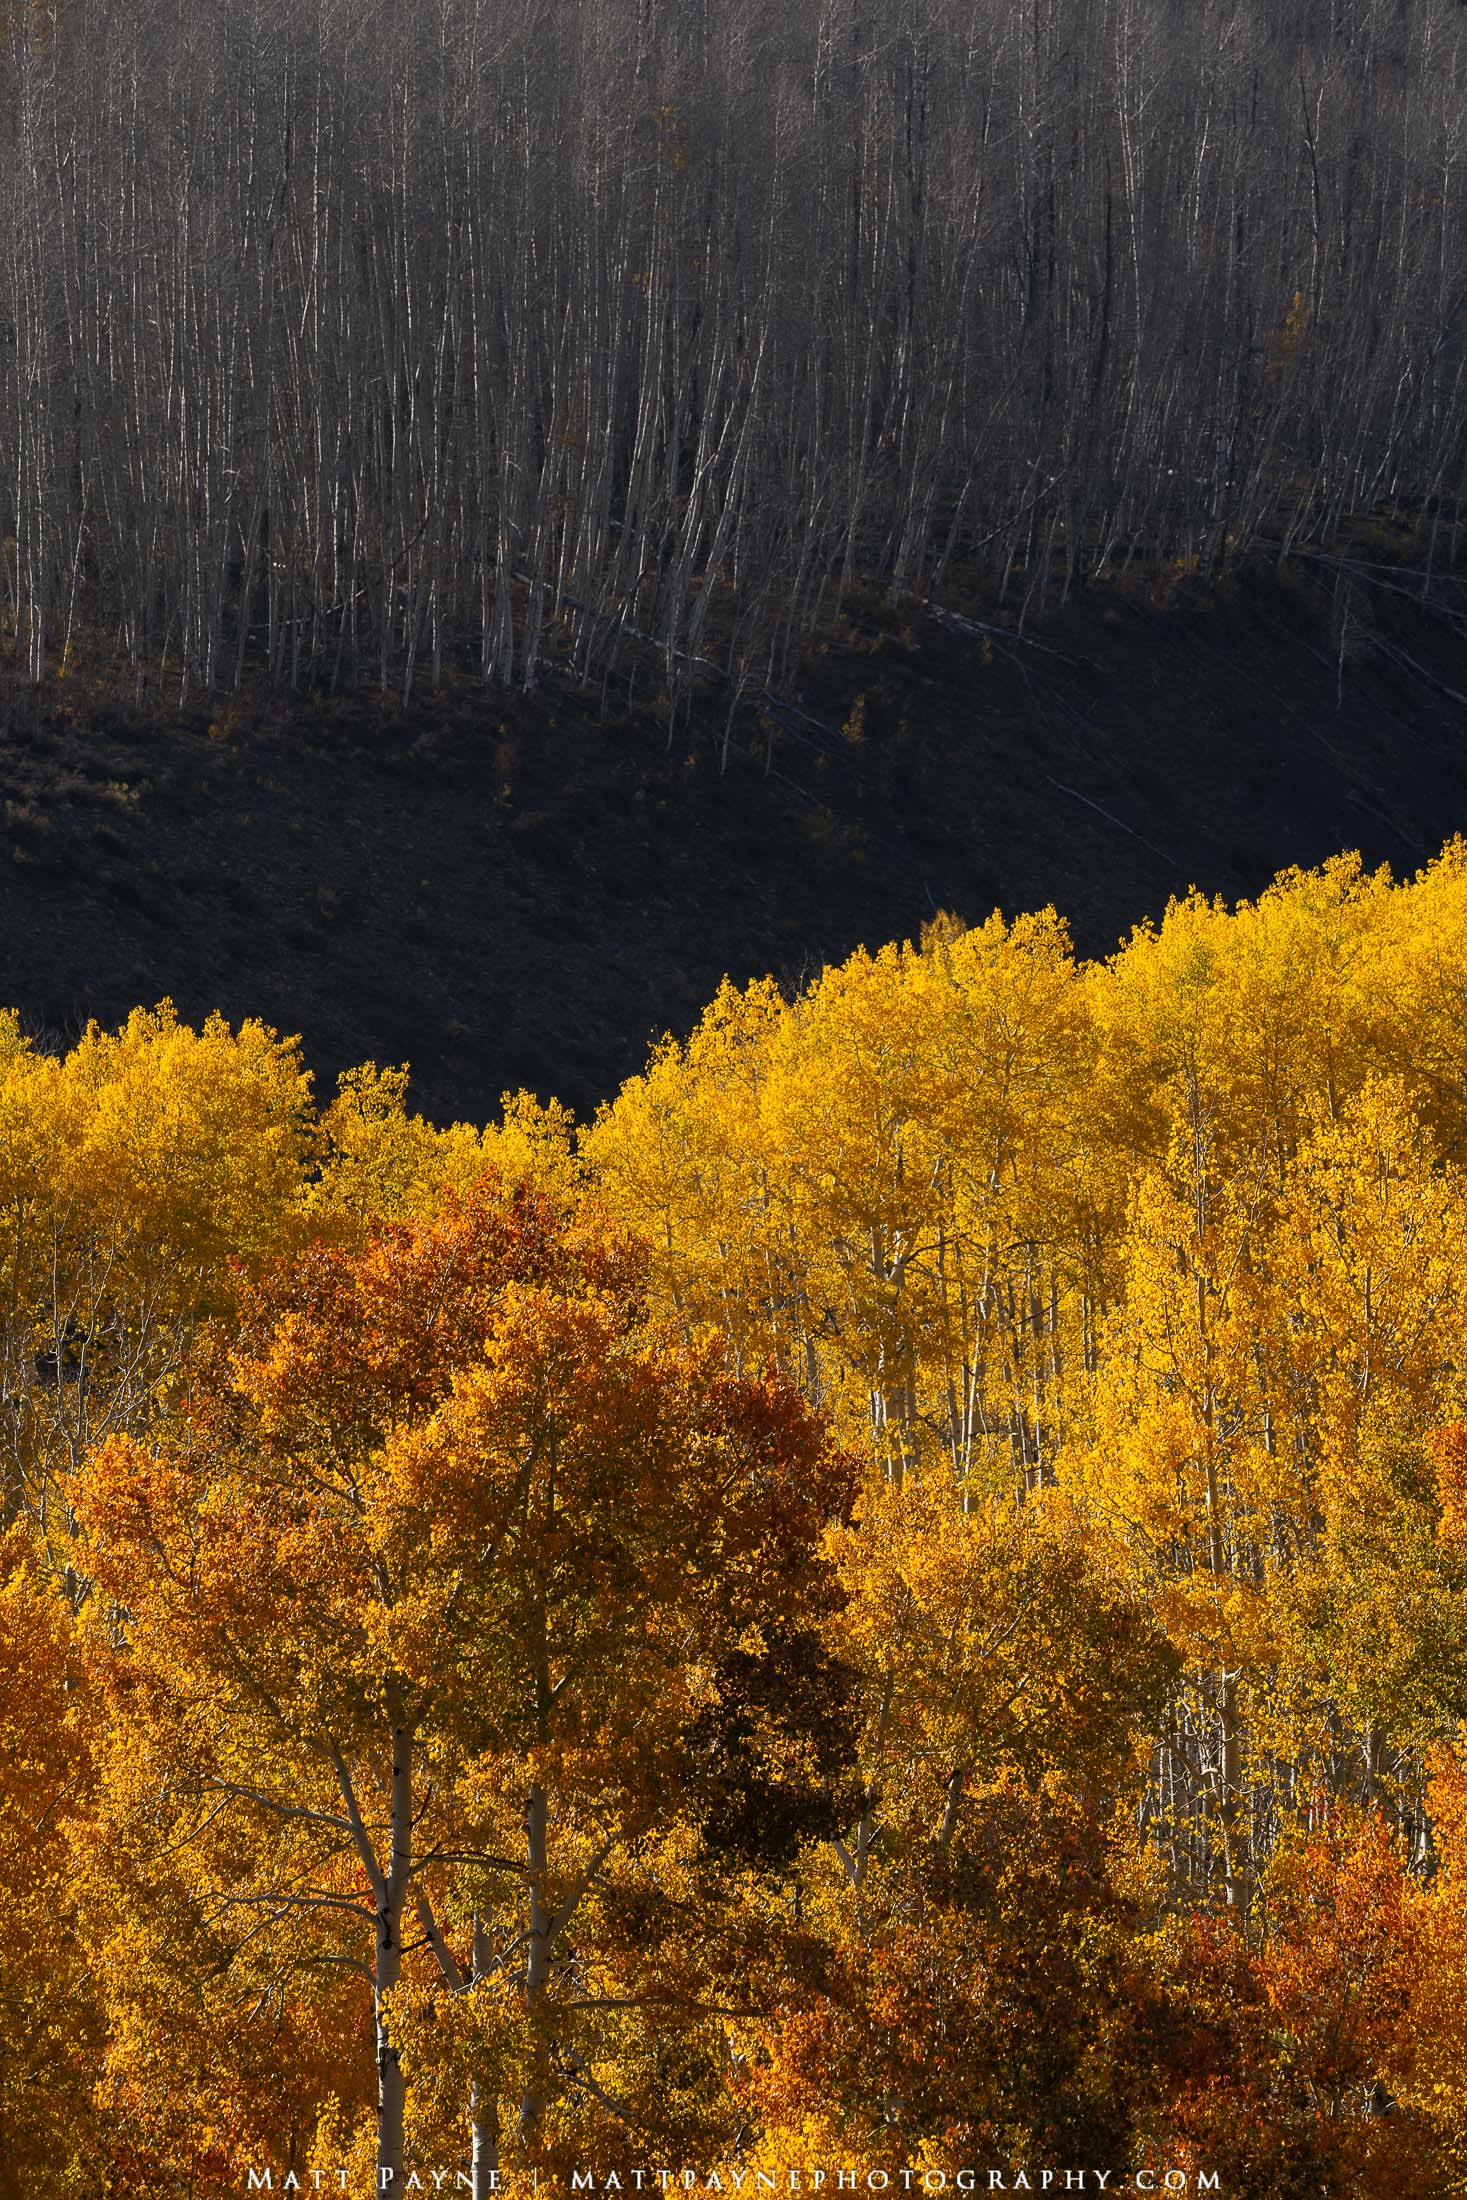 These two stands of aspen trees, only separated by a small ditch, tell two very different stories. One is filled with vibrant...